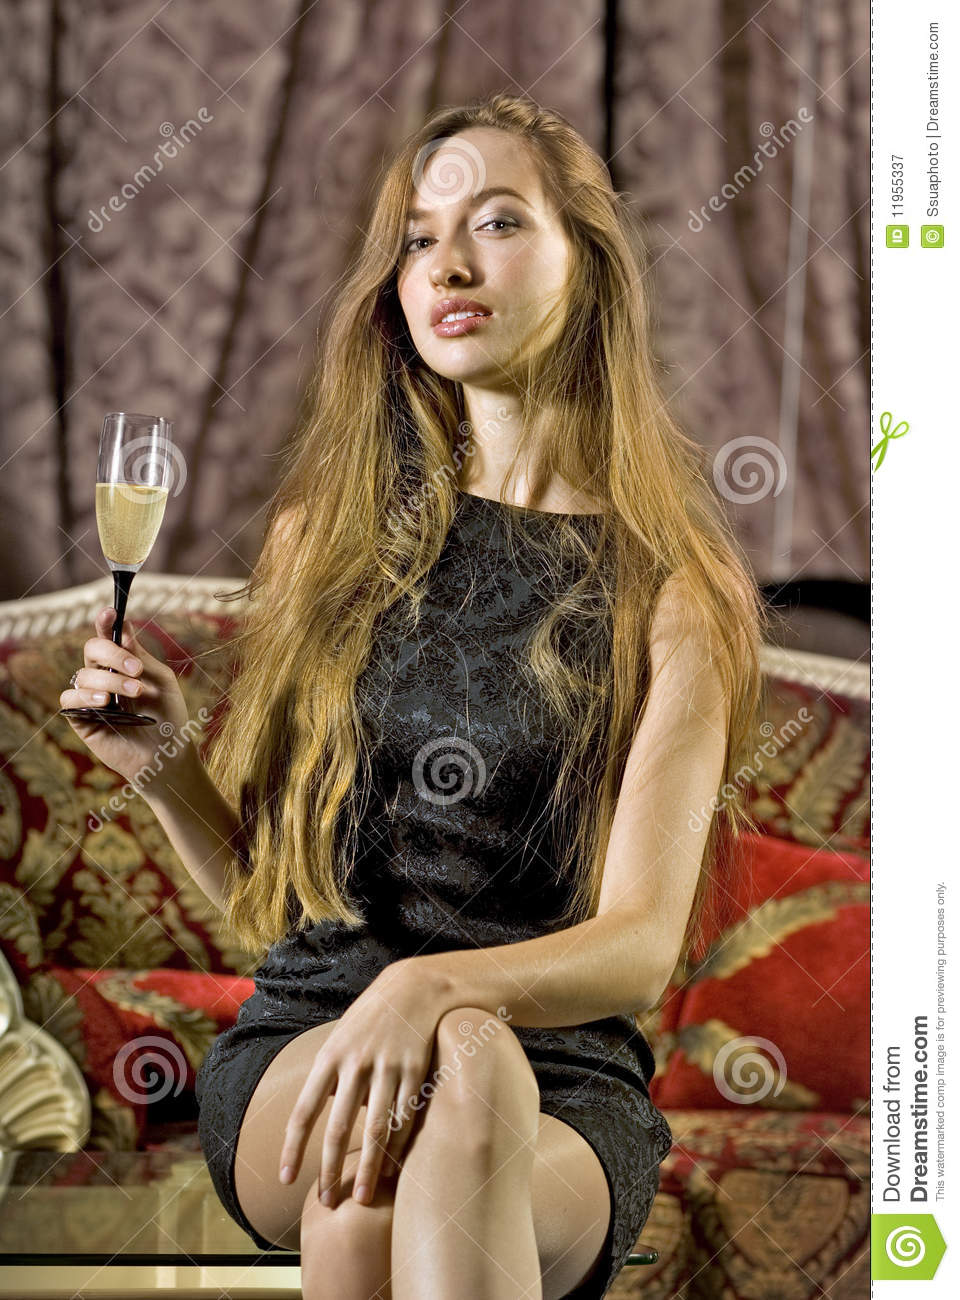 Woman with glass of brut